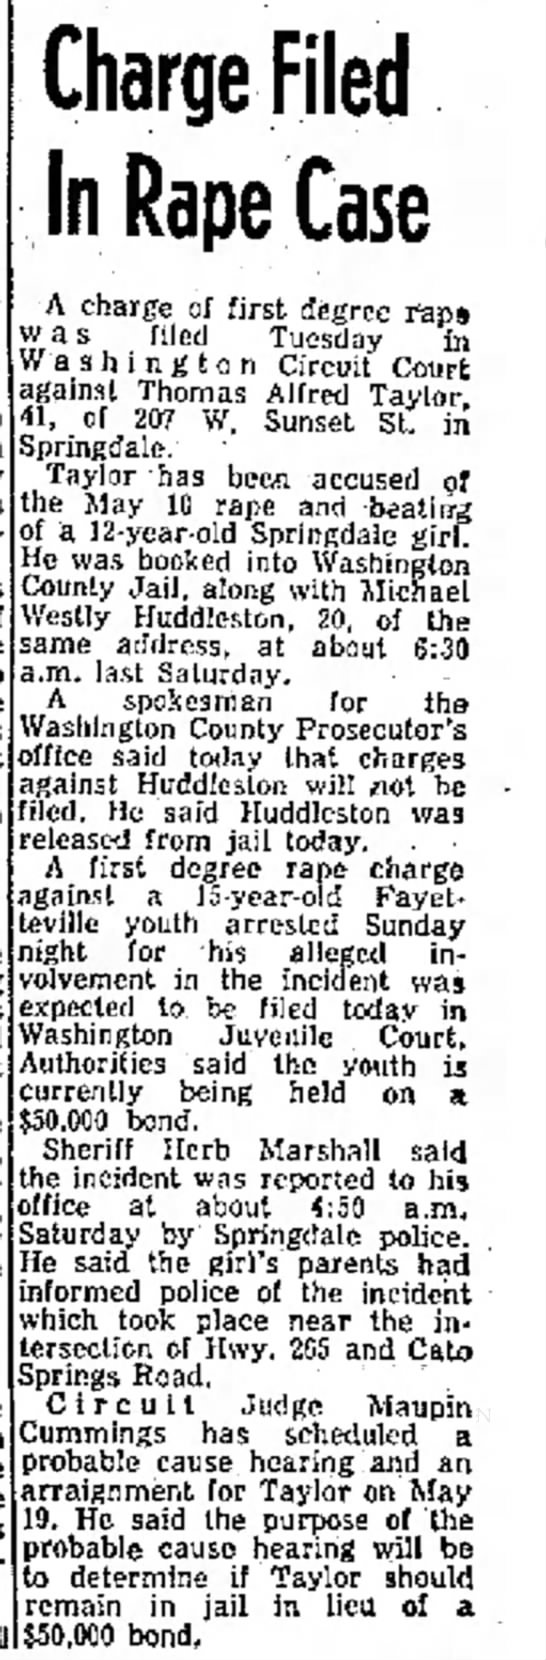 Thomas Alfred Taylor Northwest Arkansas Times, Fayetteville, Arkansas, Wed,5-14-1975 Page 1